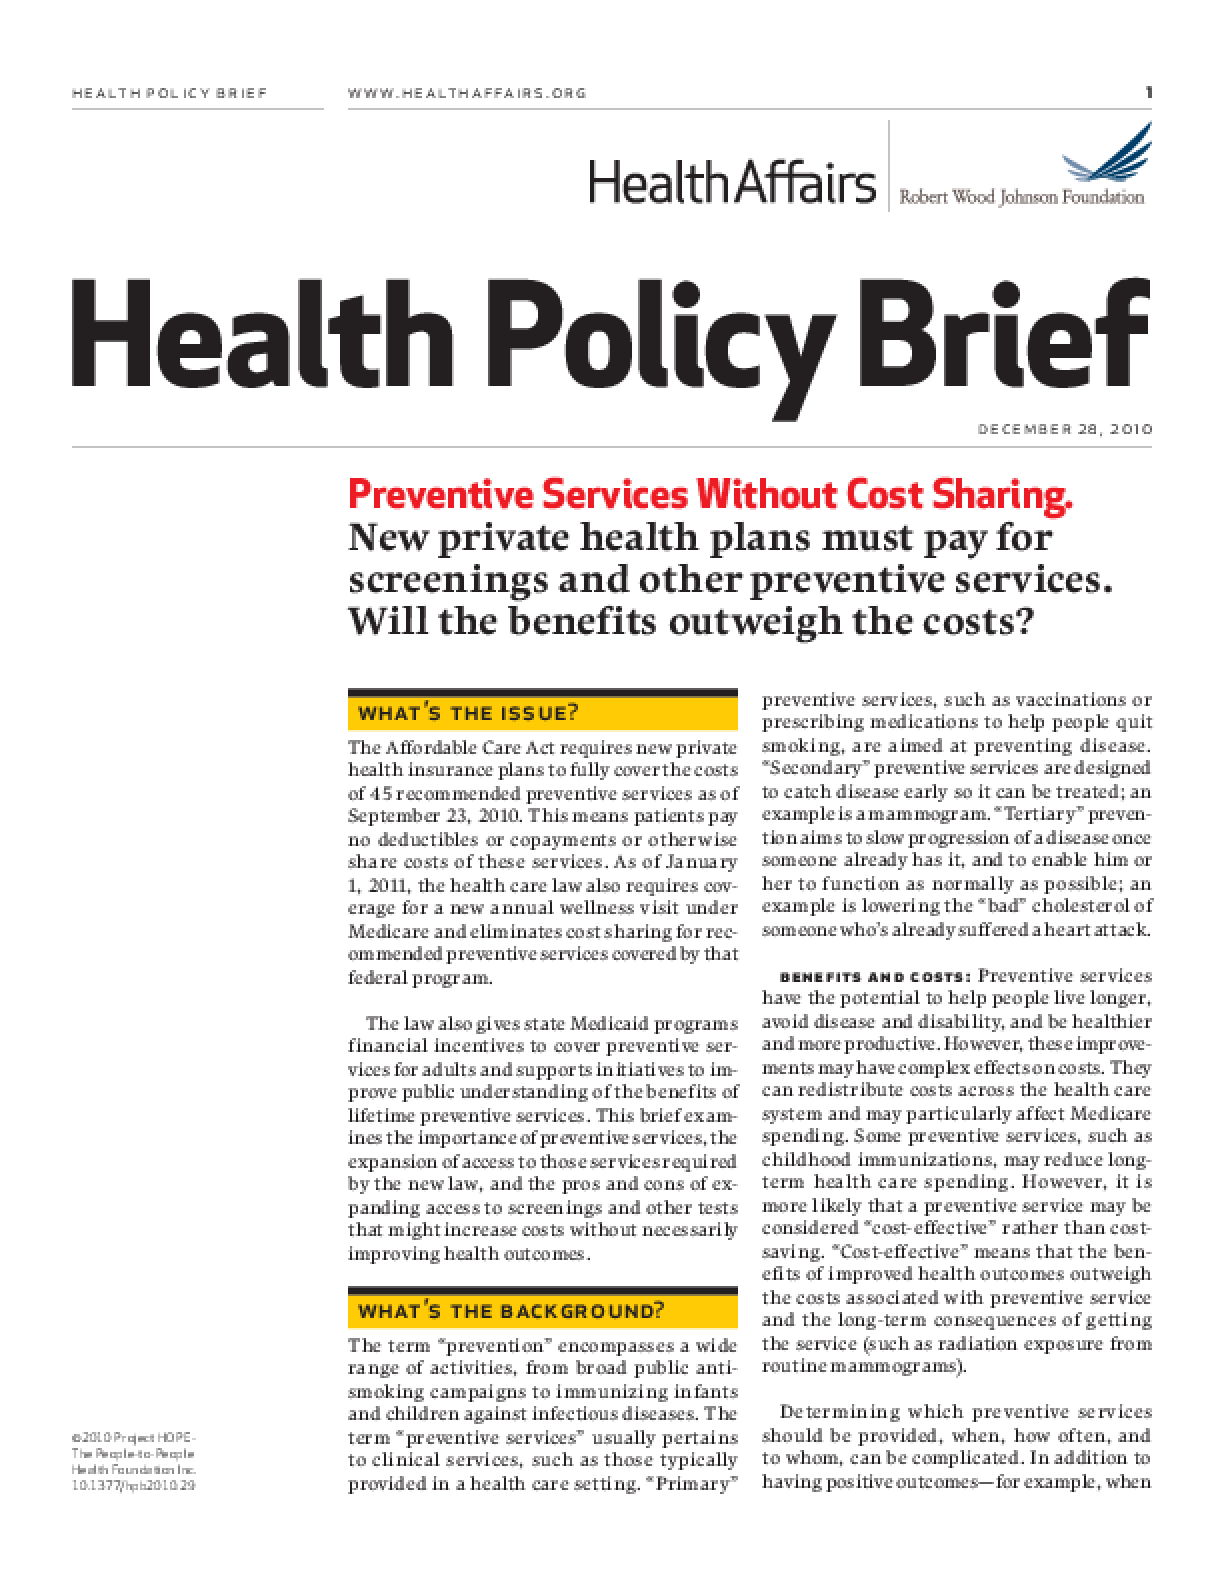 Health Affairs/RWJF Policy Brief: Preventive Services Without Cost Sharing